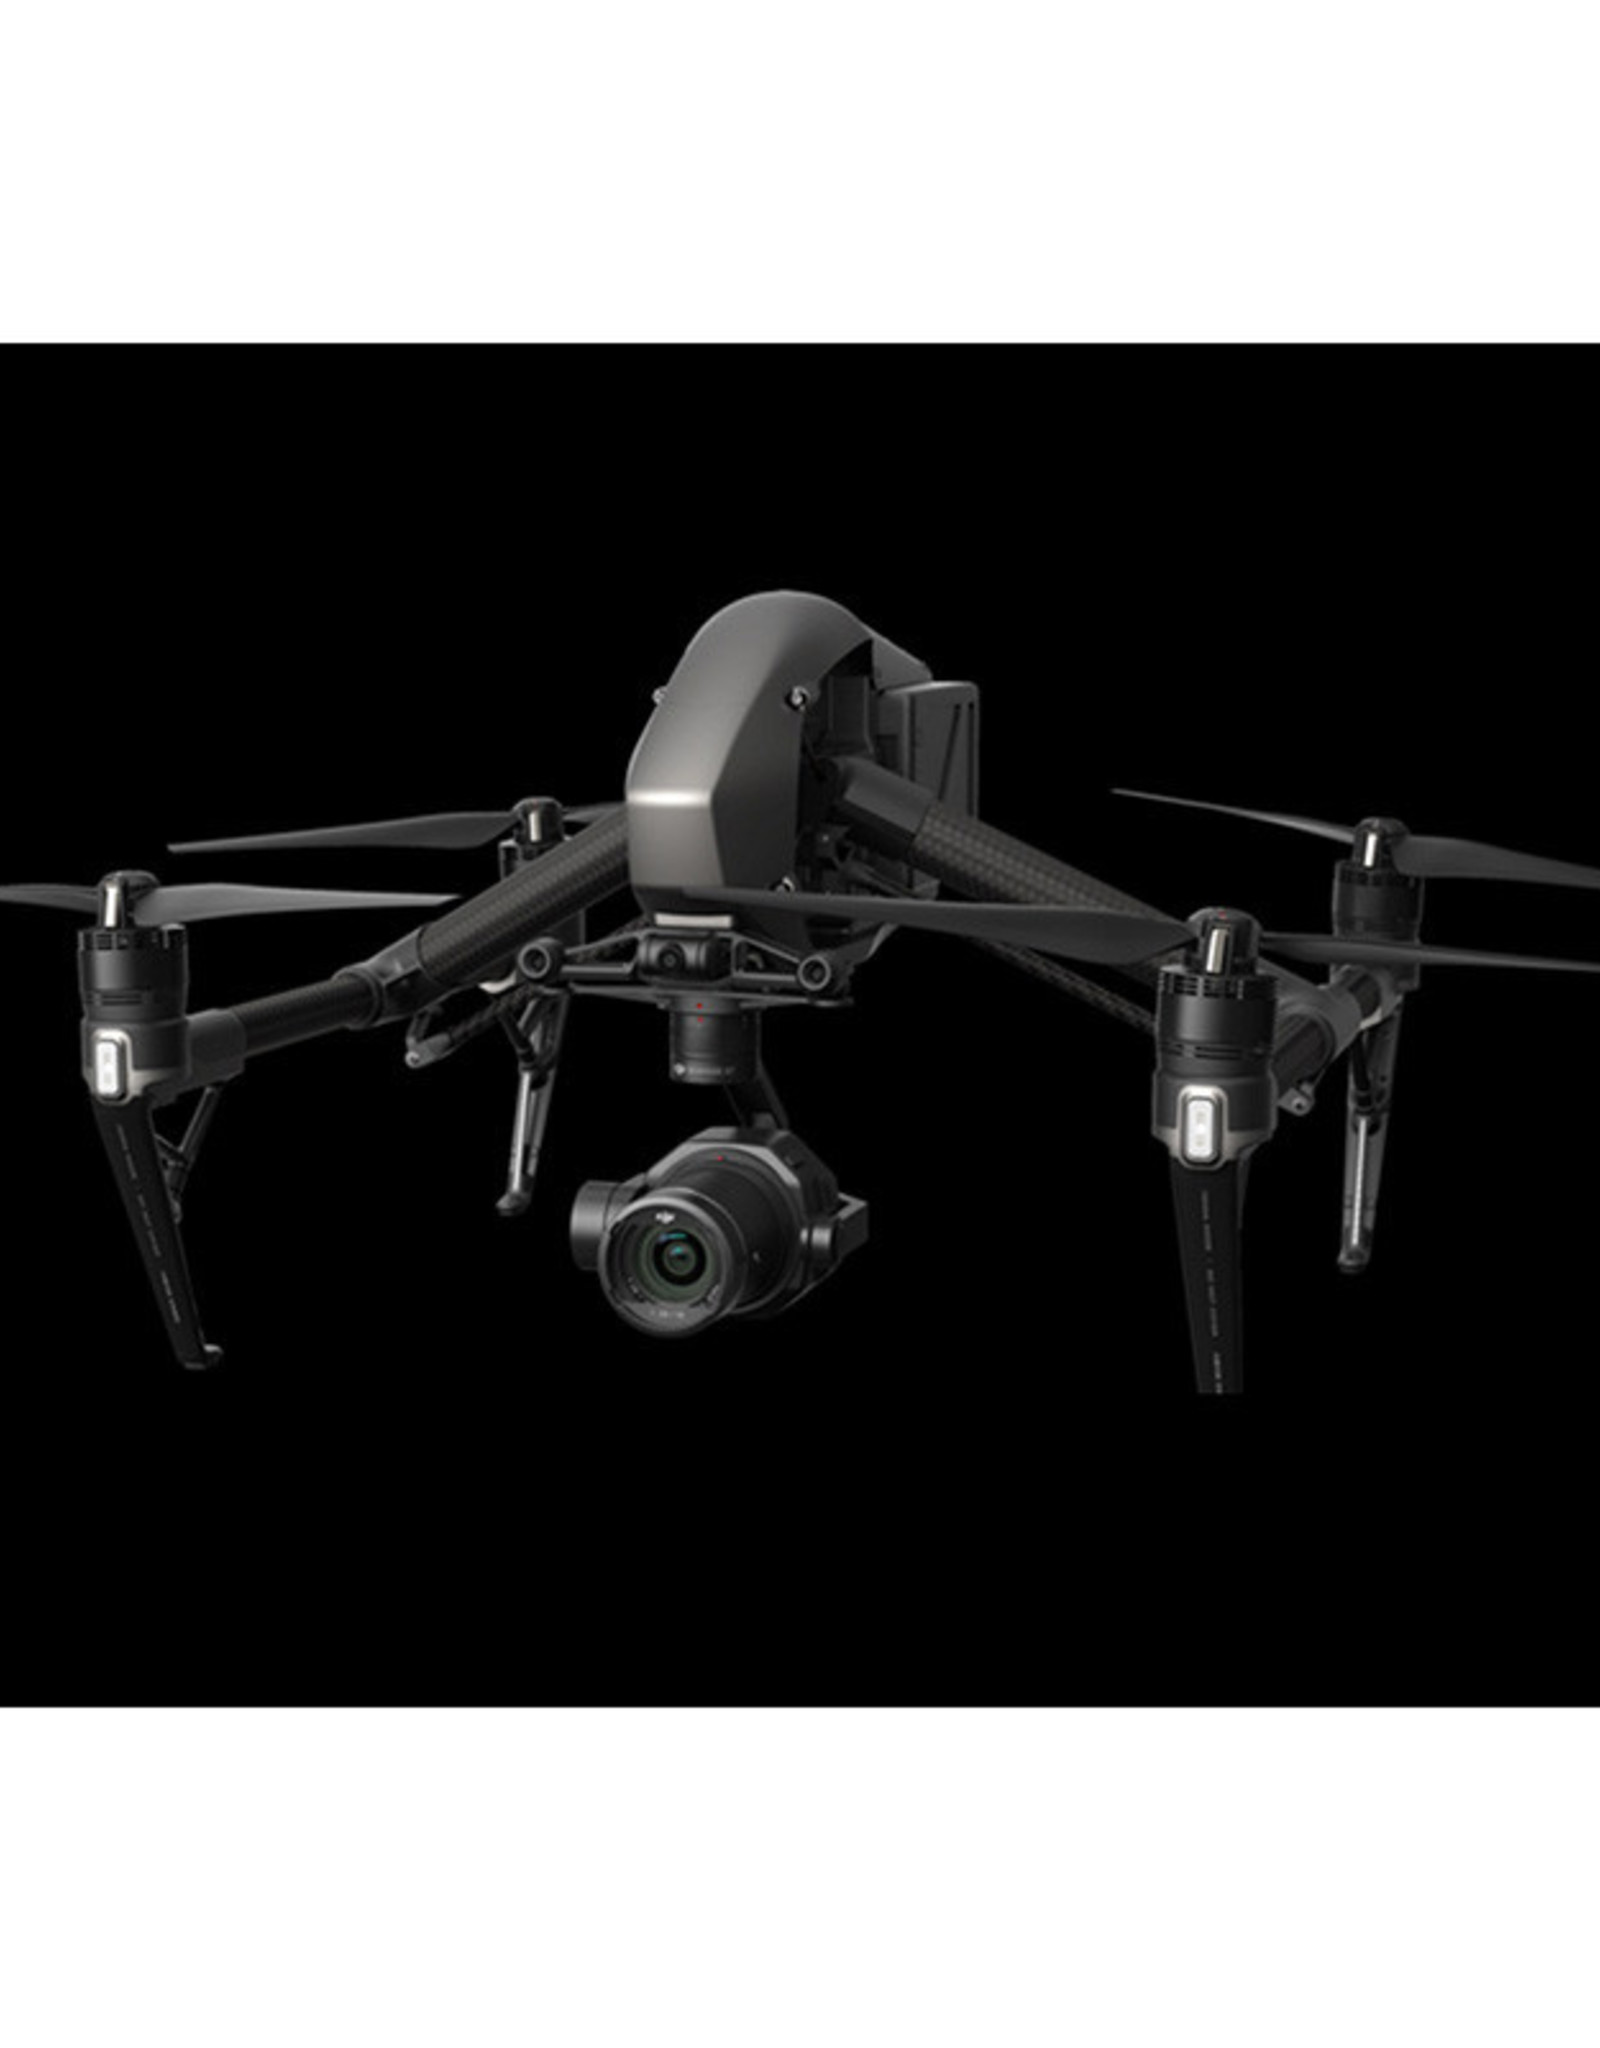 DJI Zenmuse X7 (Lens Excluded)